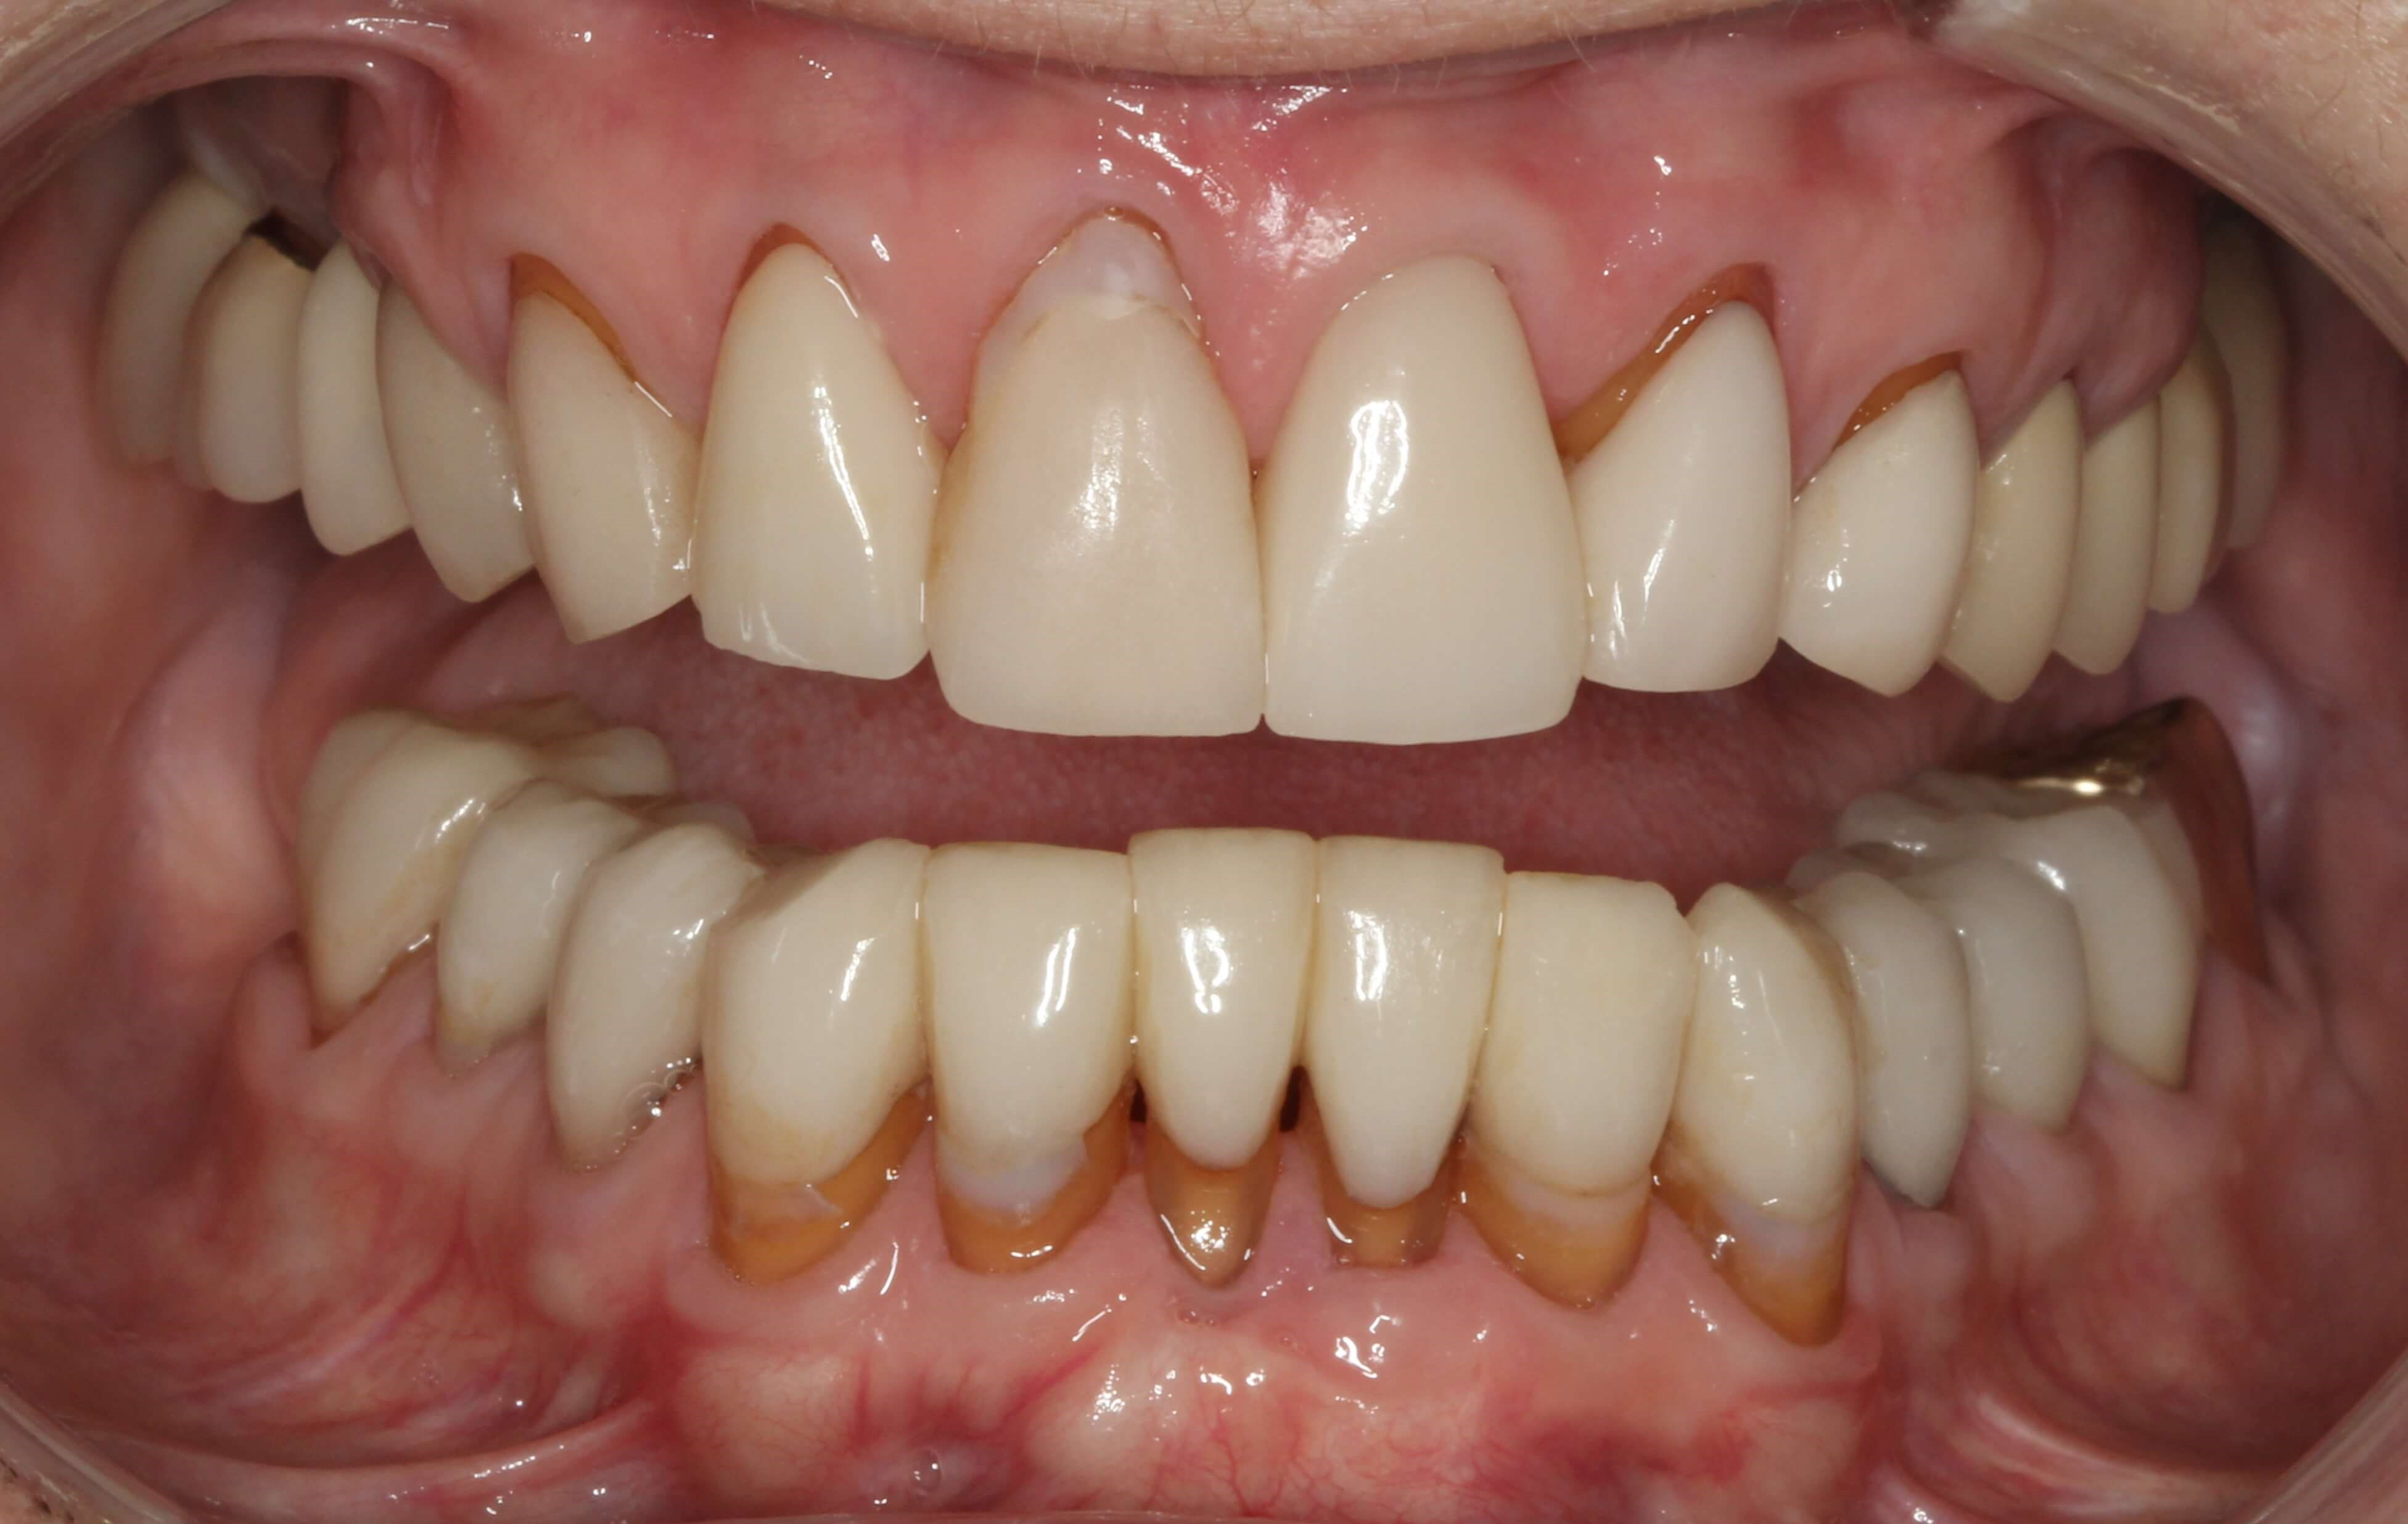 Full-Mouth Smile Makeover Before